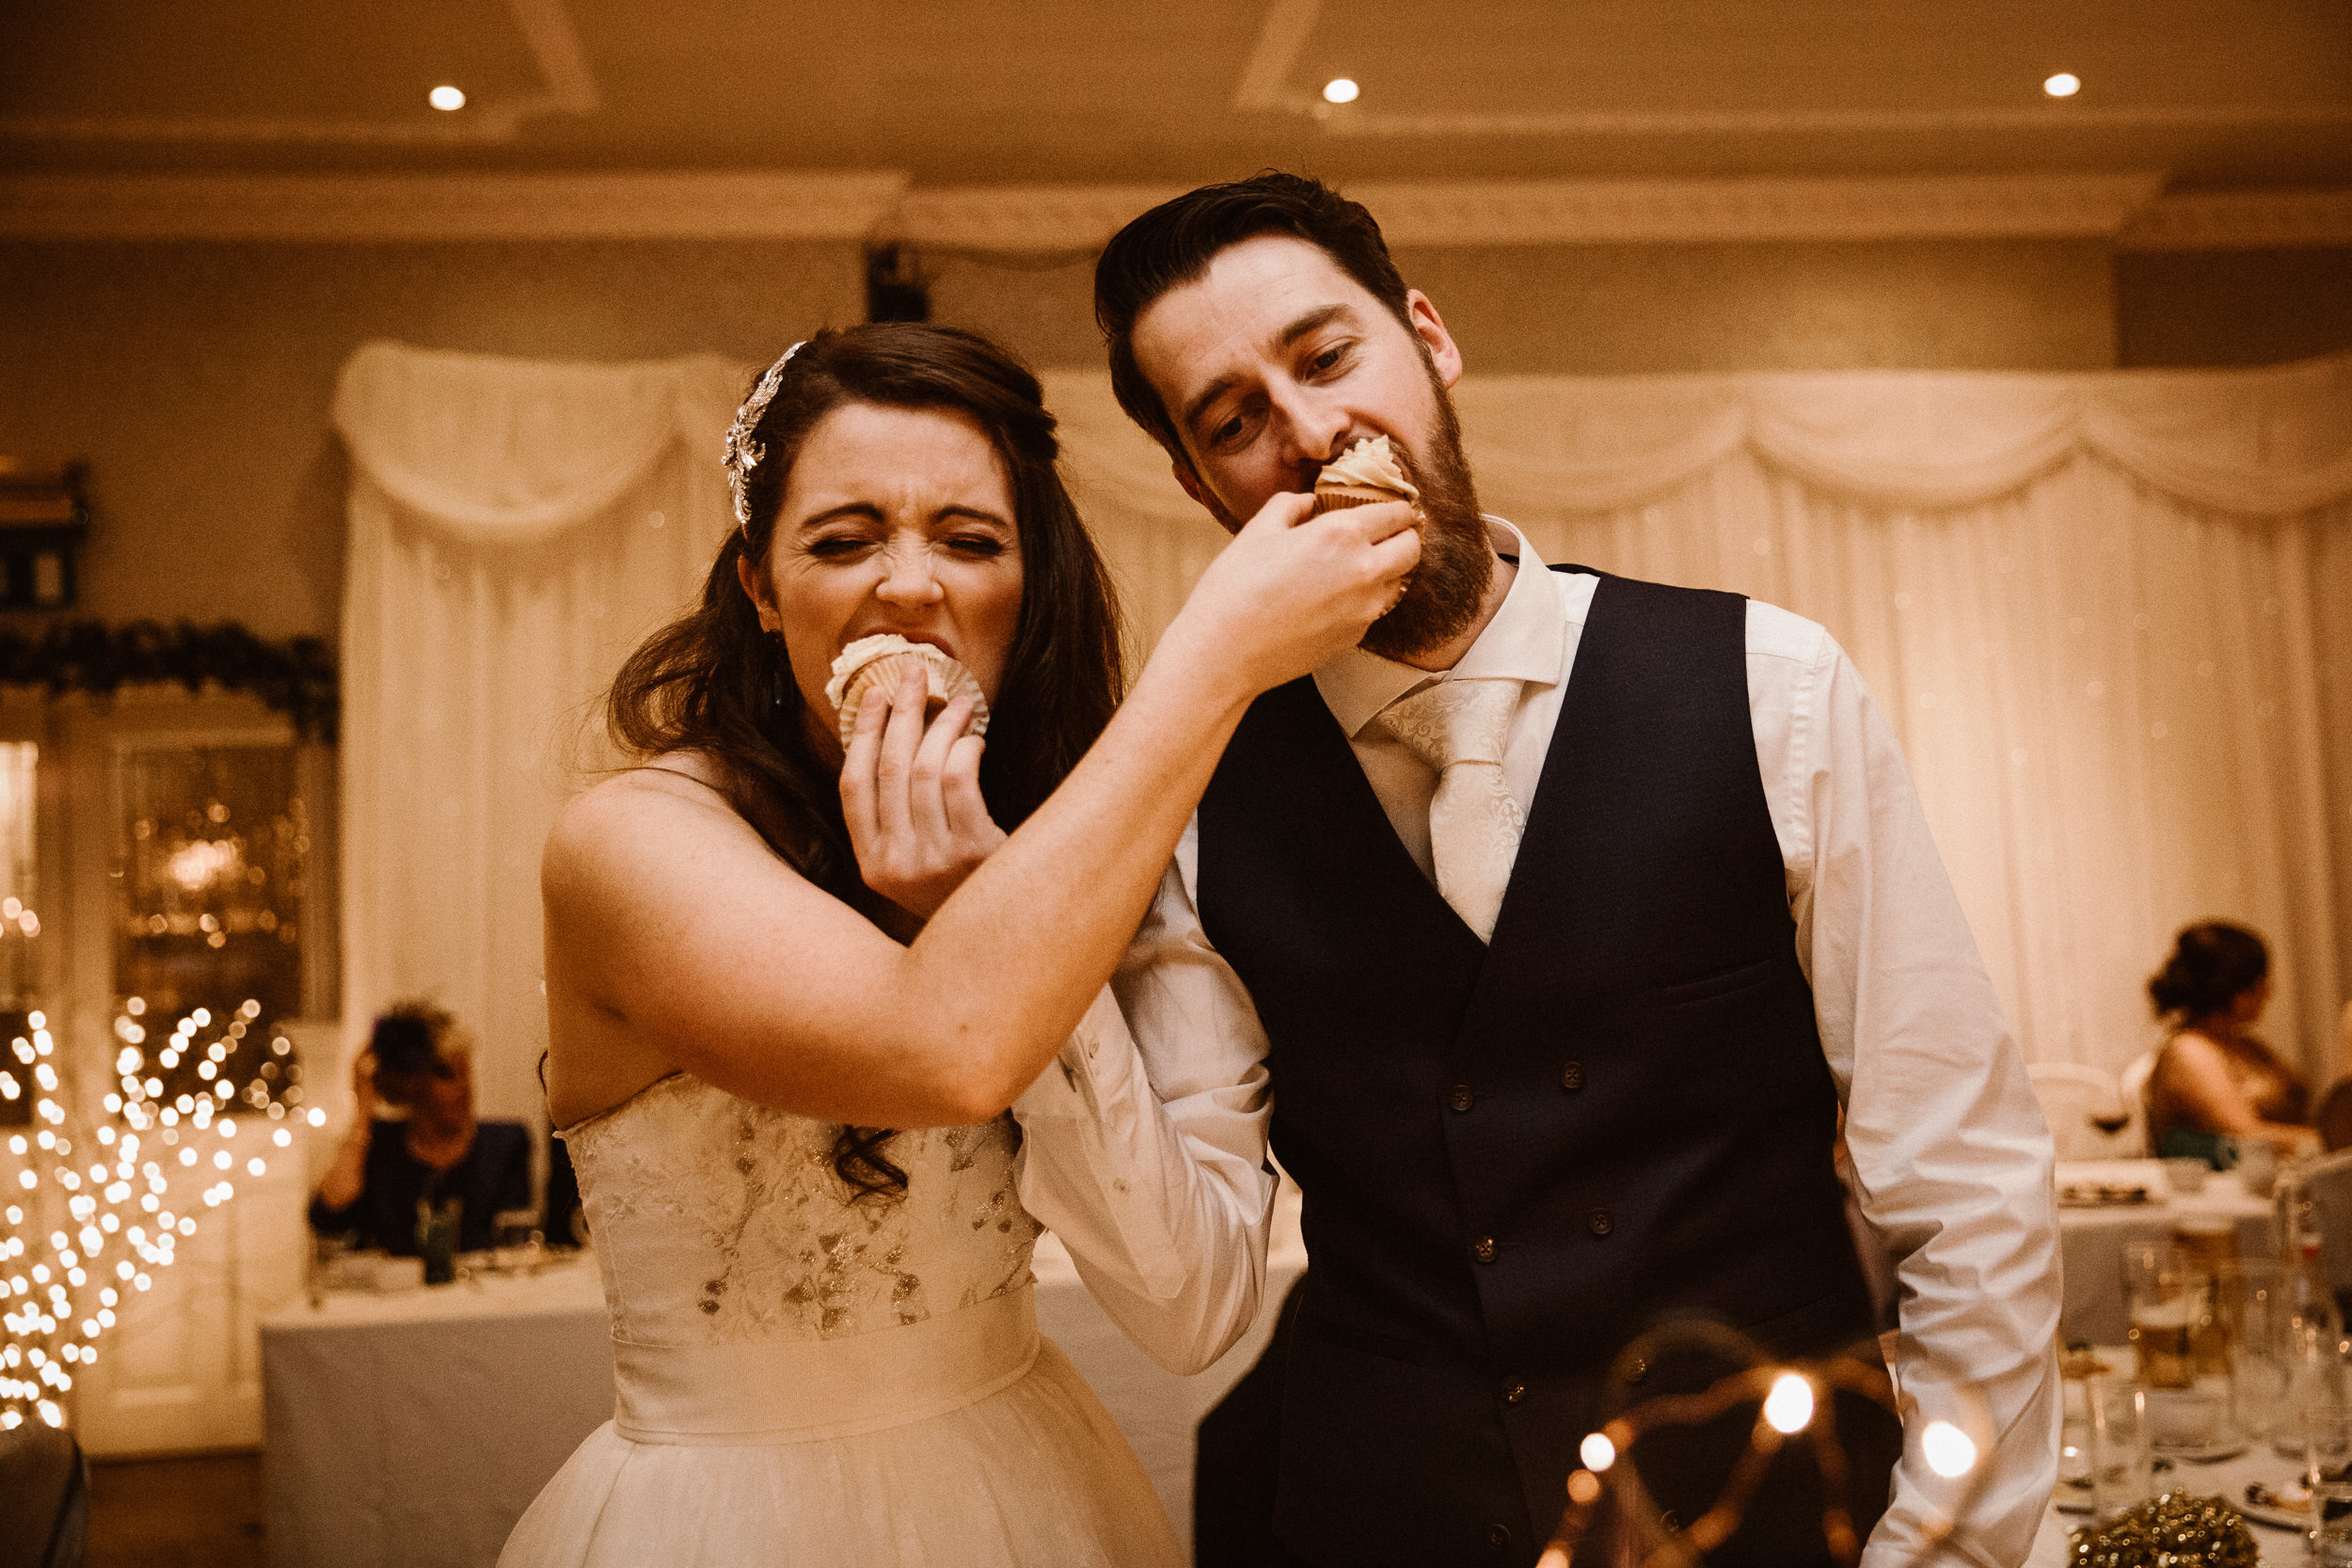 clairebyrnephotography-fun-wedding-photographer-ireland-creative-149.jpg